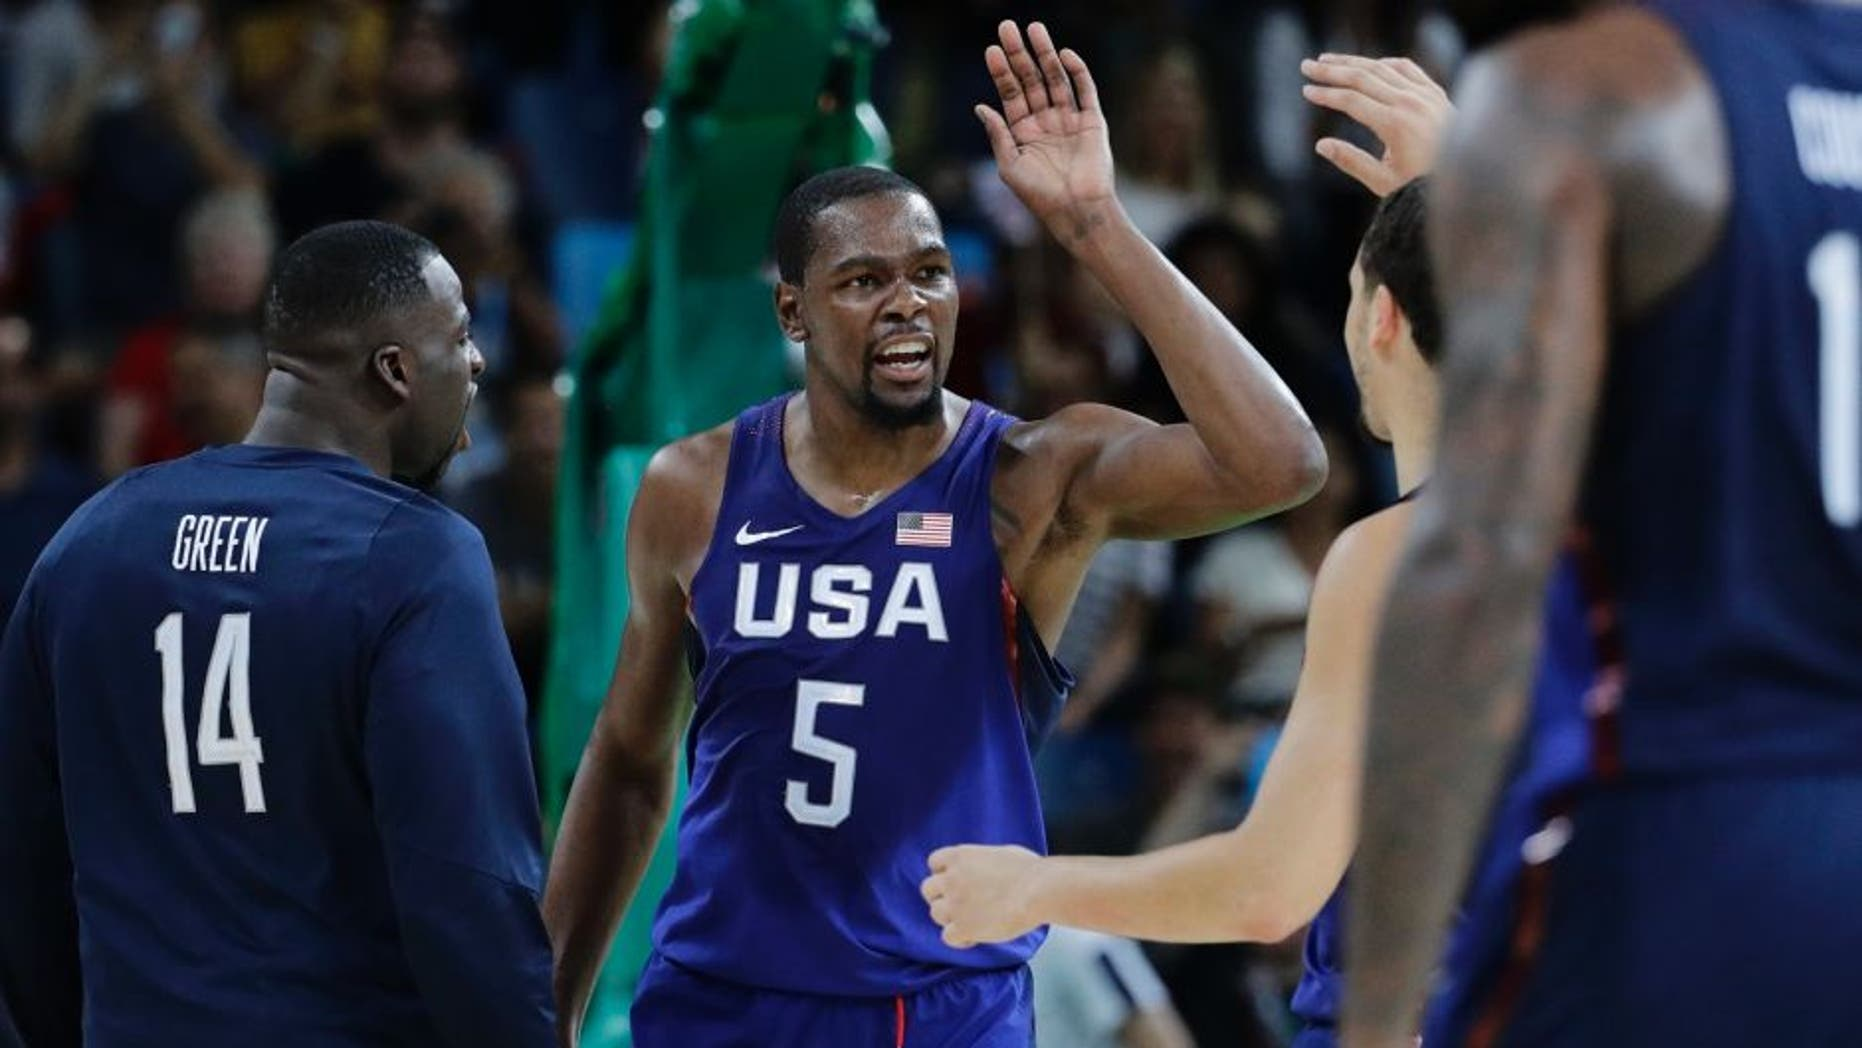 United States' Kevin Durant (5) celebrates with teammates United States' Draymond Green (14) and others after a steal and dunk against Serbia during the men's gold medal basketball game at the 2016 Summer Olympics in Rio de Janeiro, Brazil, Sunday, Aug. 21, 2016. (AP Photo/Matt York)